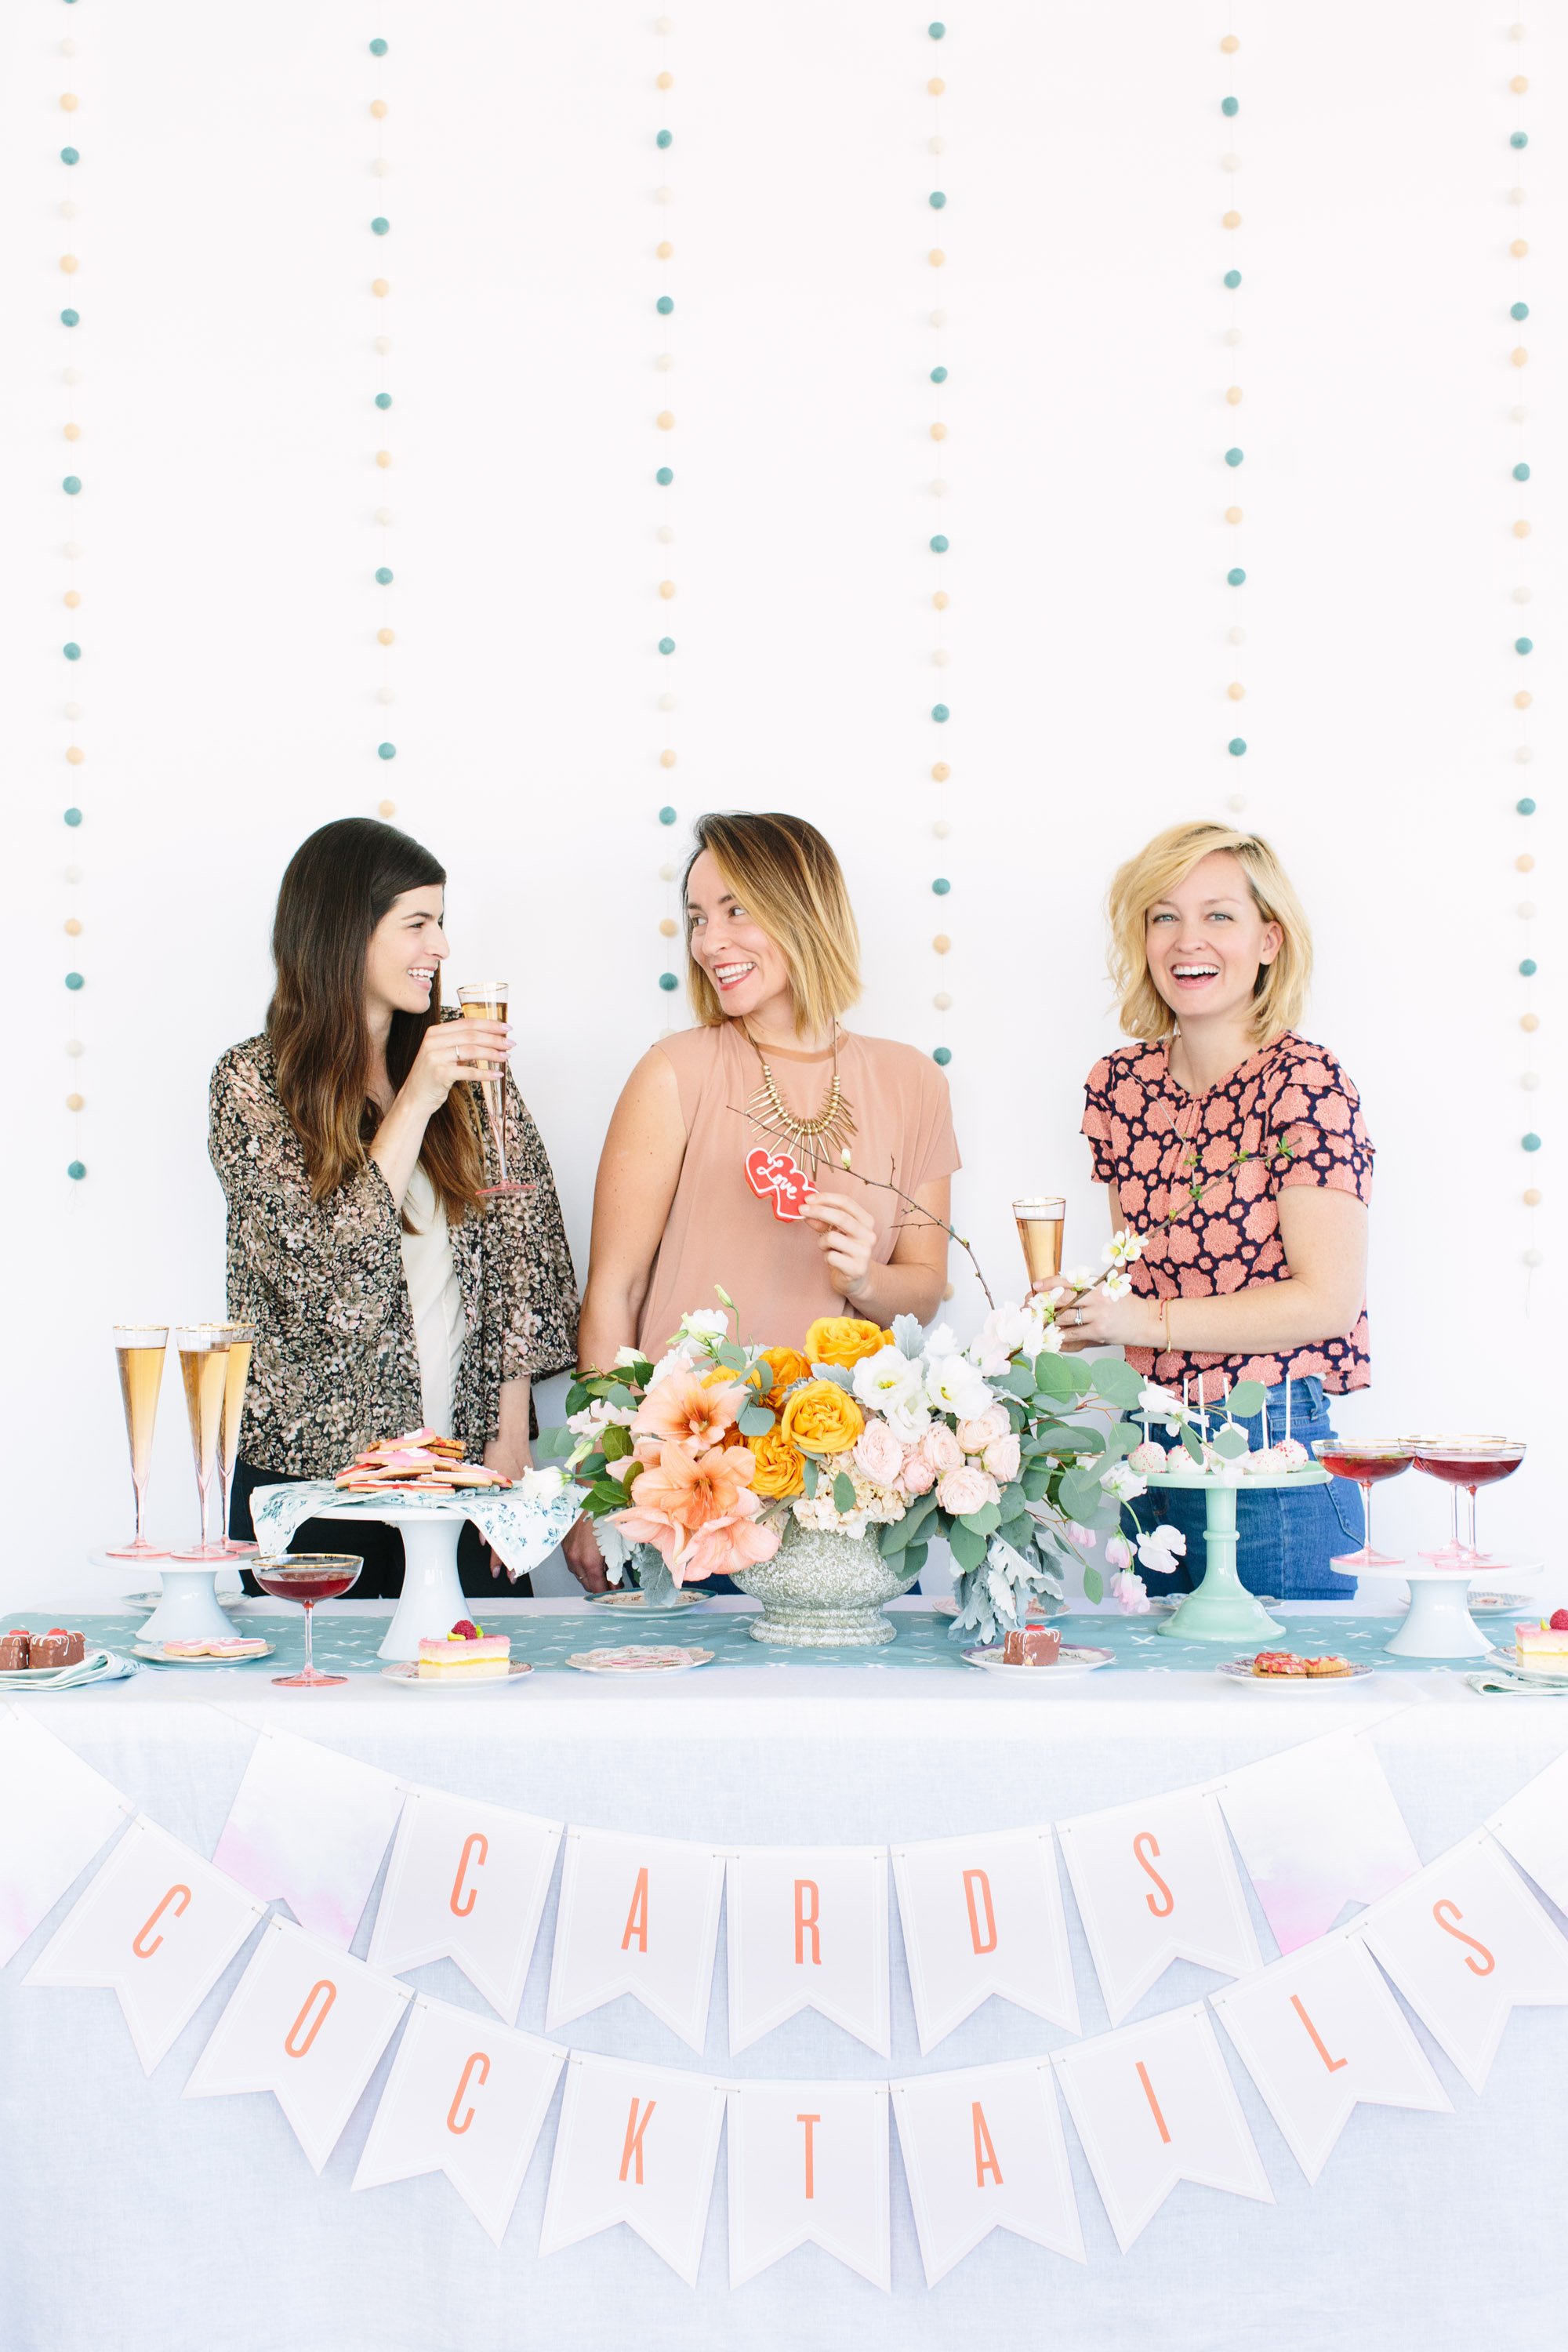 galentines-day-cards-and-cocktails-1